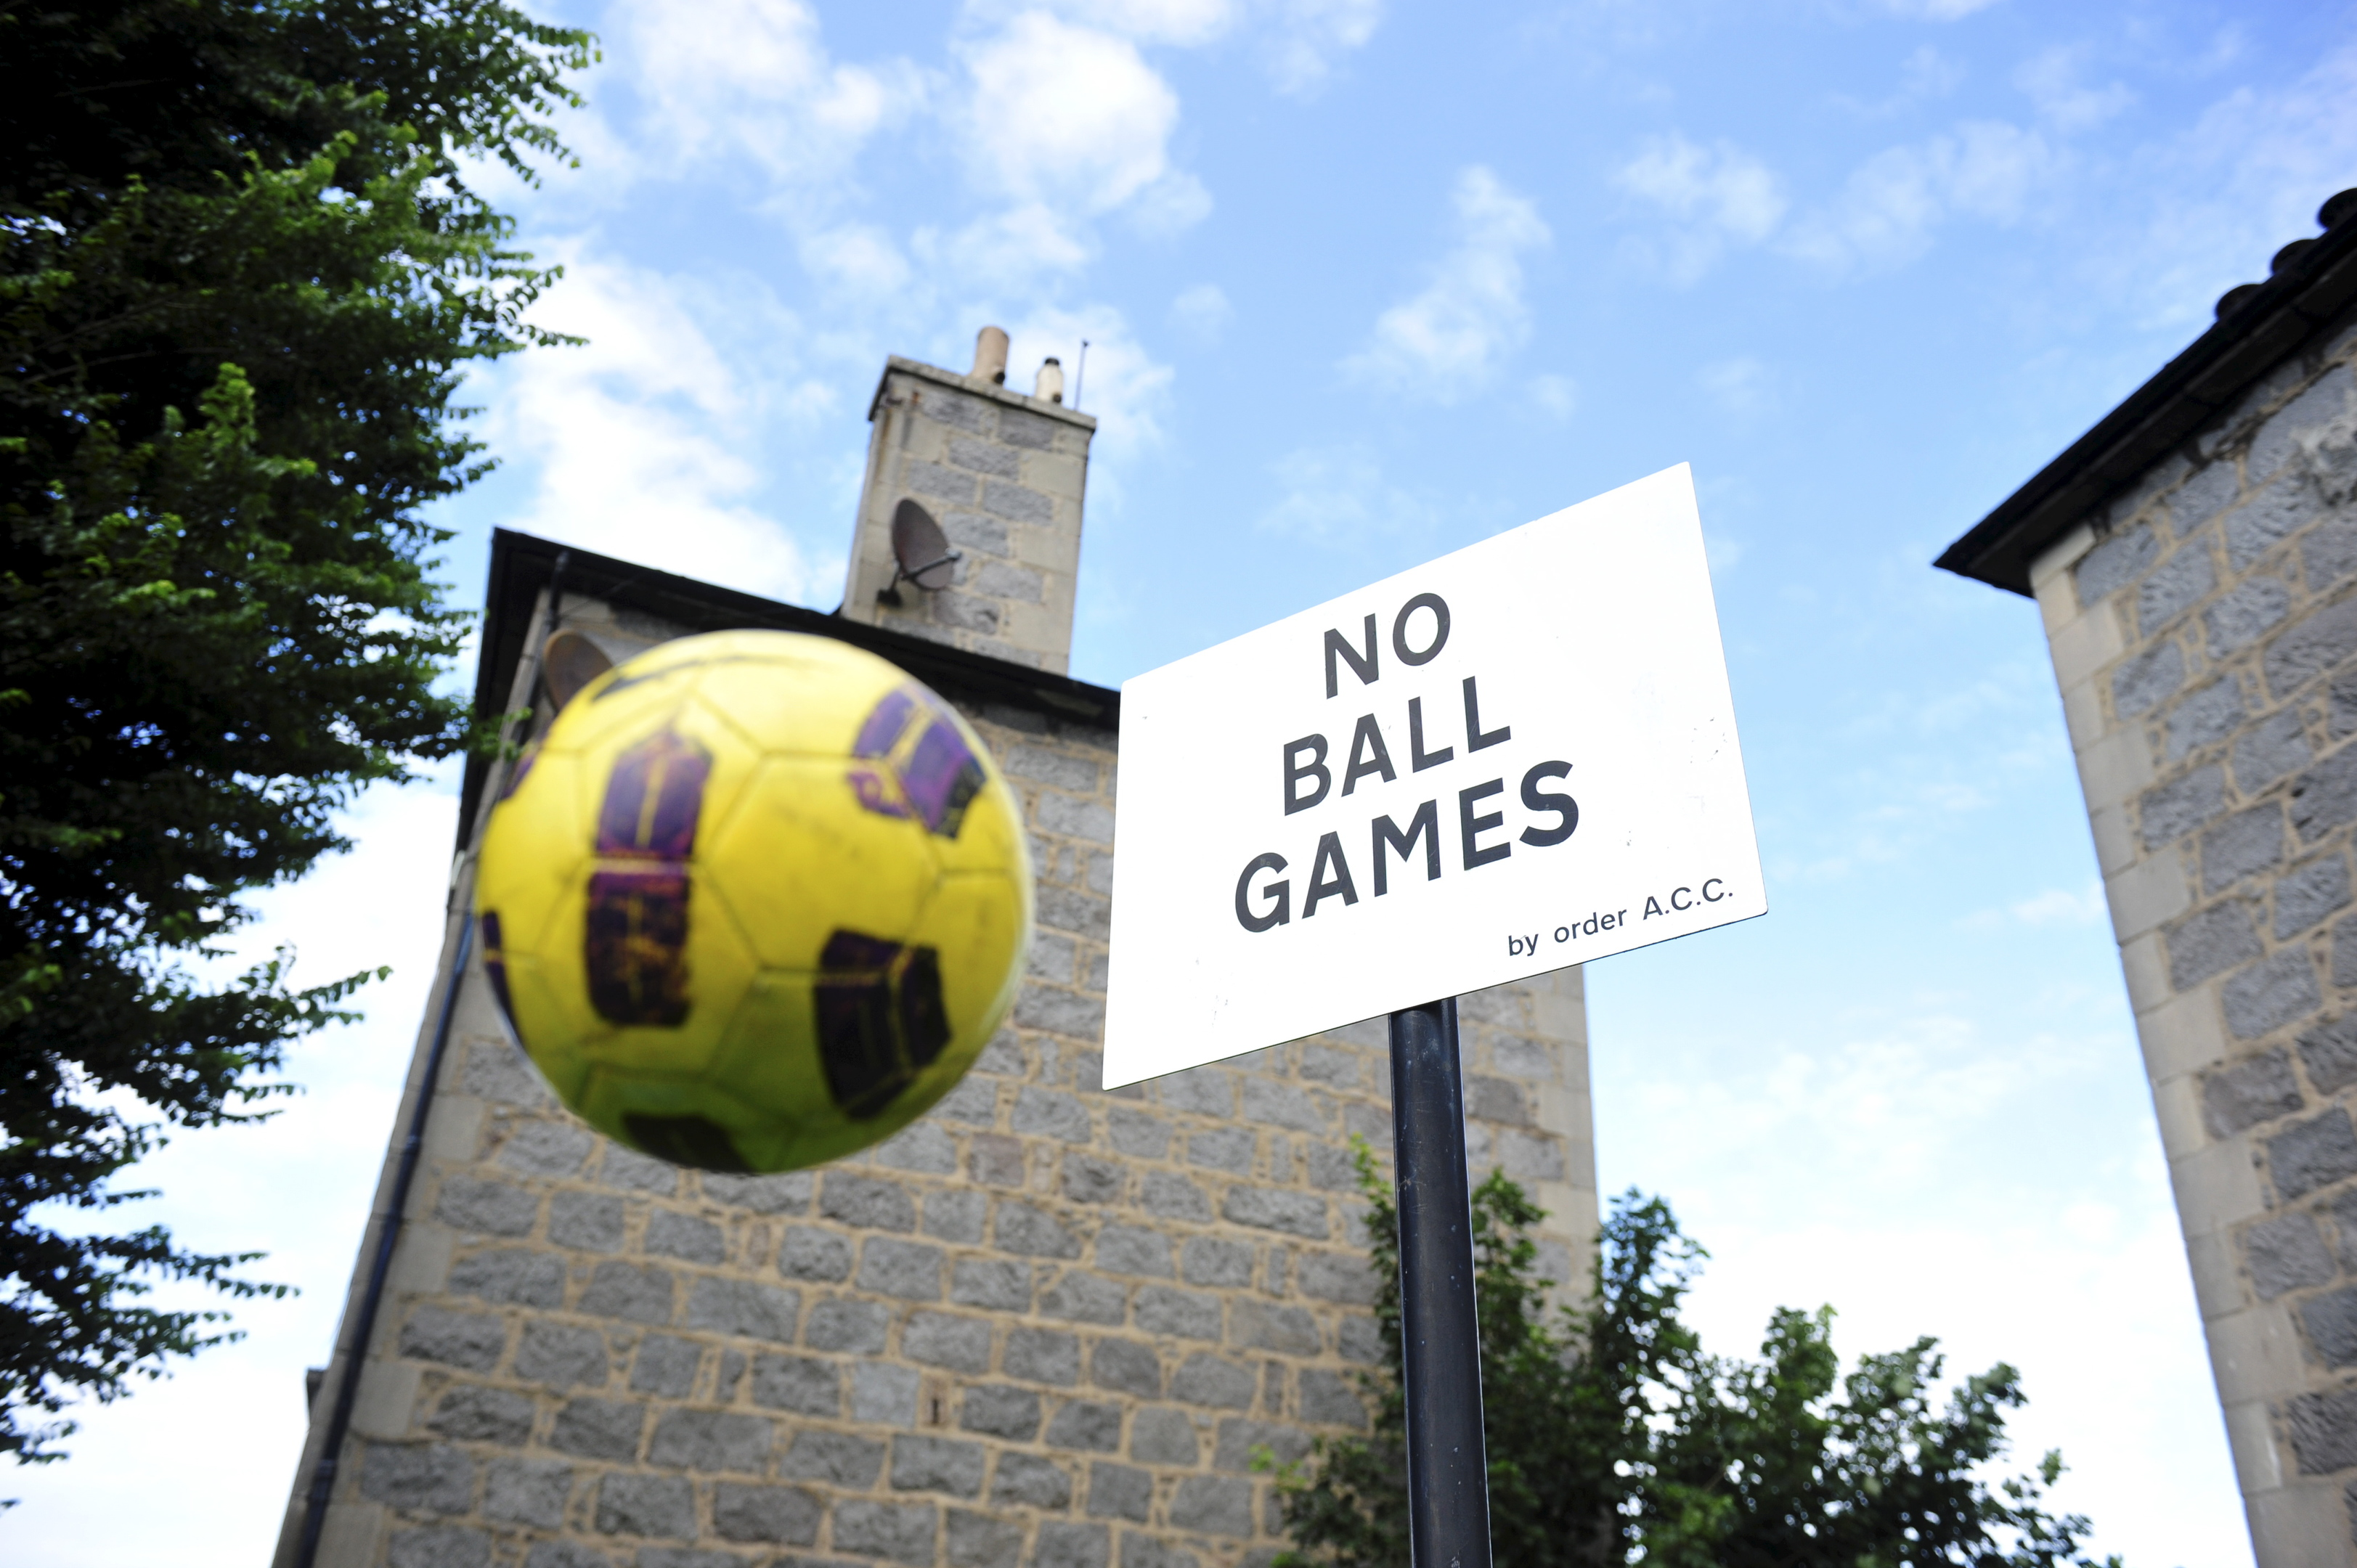 It's understood the signs  – which will be removed by UK National Play Day on  August 3 next year  – had no legal status.